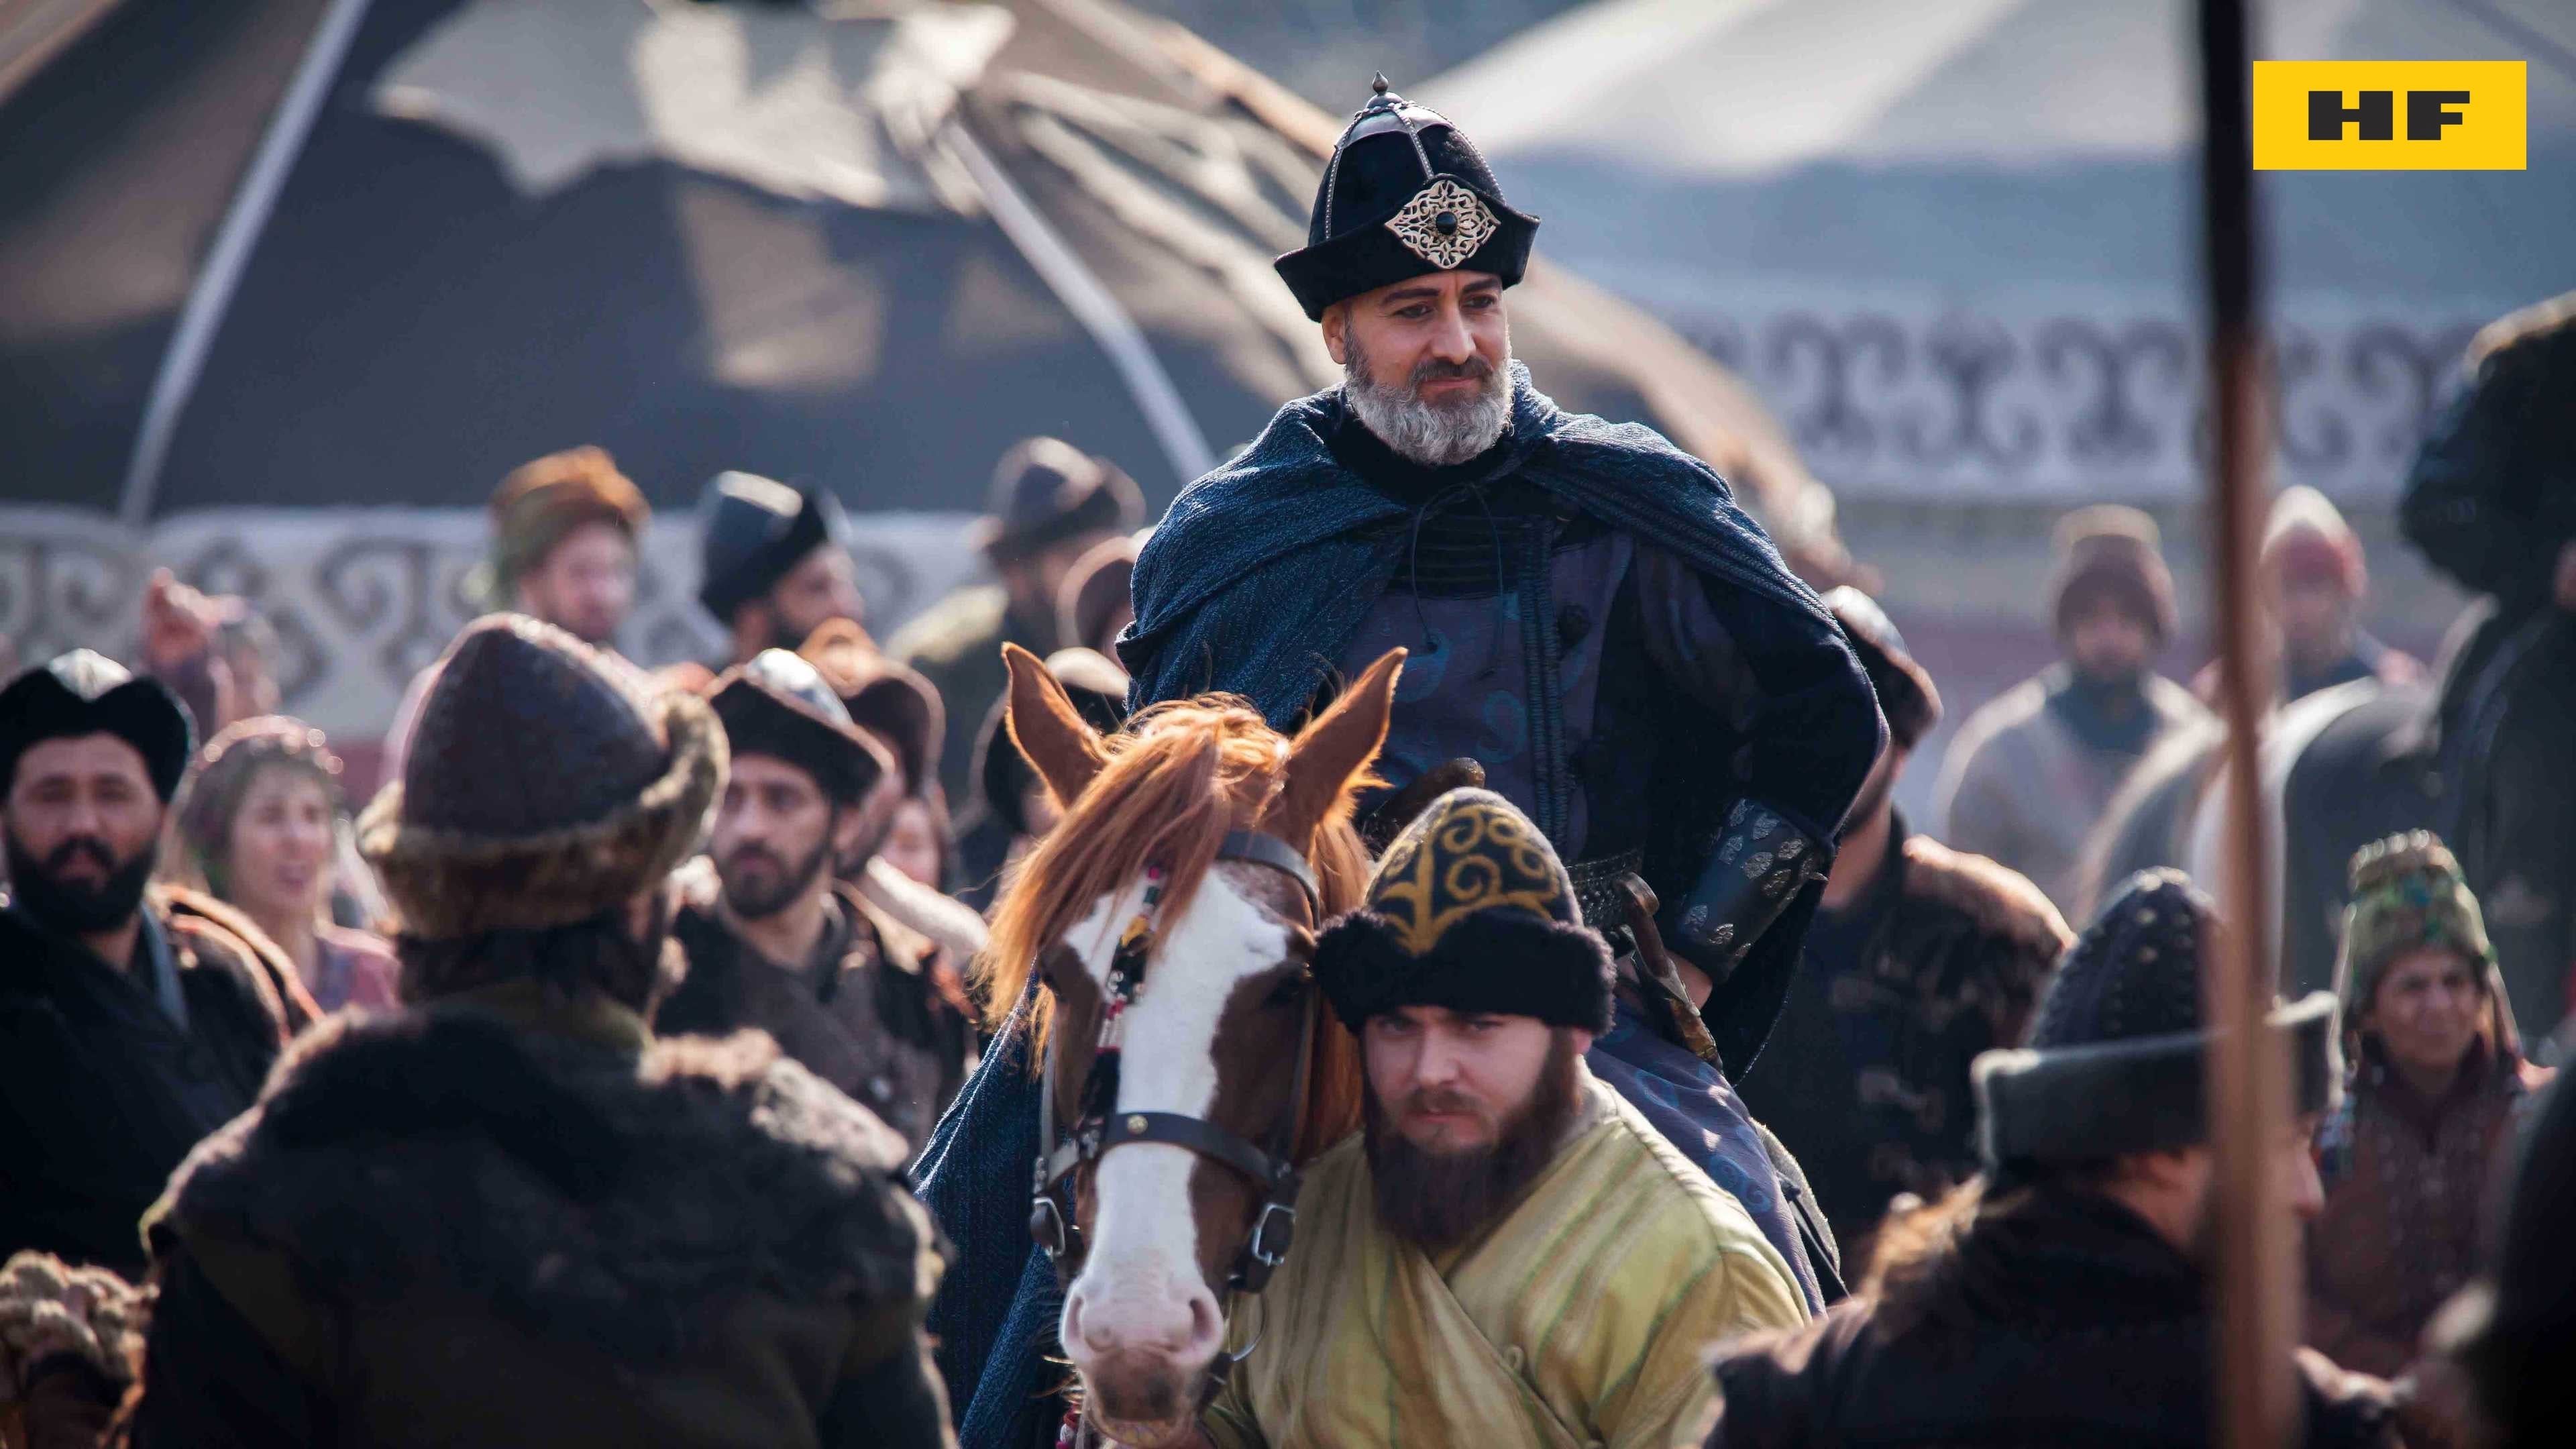 Watch Dirilis Ertugrul season 2 Episode 20 - Historical Fun TV